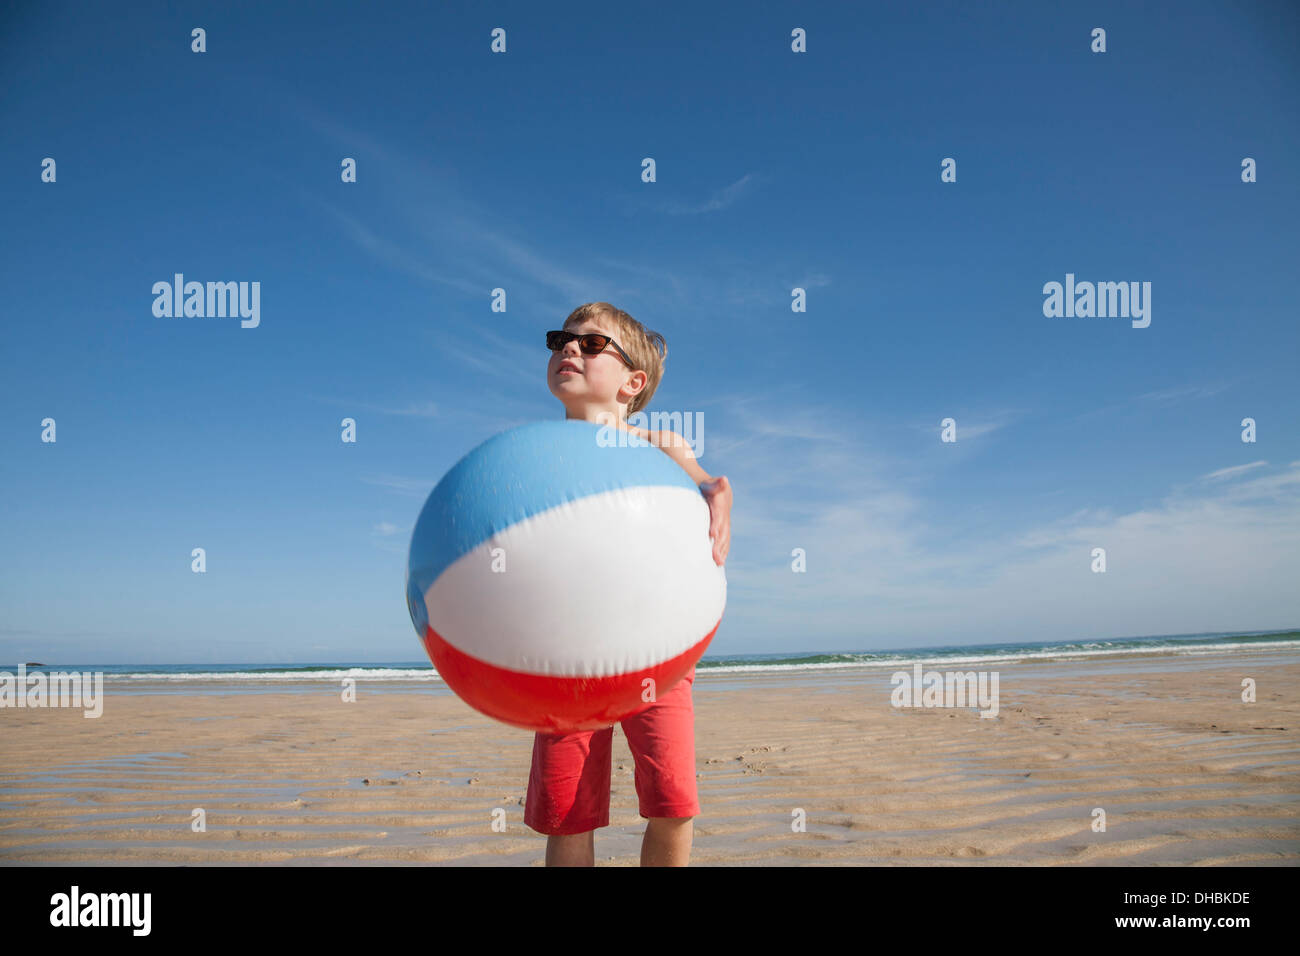 A boy on the beach holding a large inflatable beach ball. - Stock Image